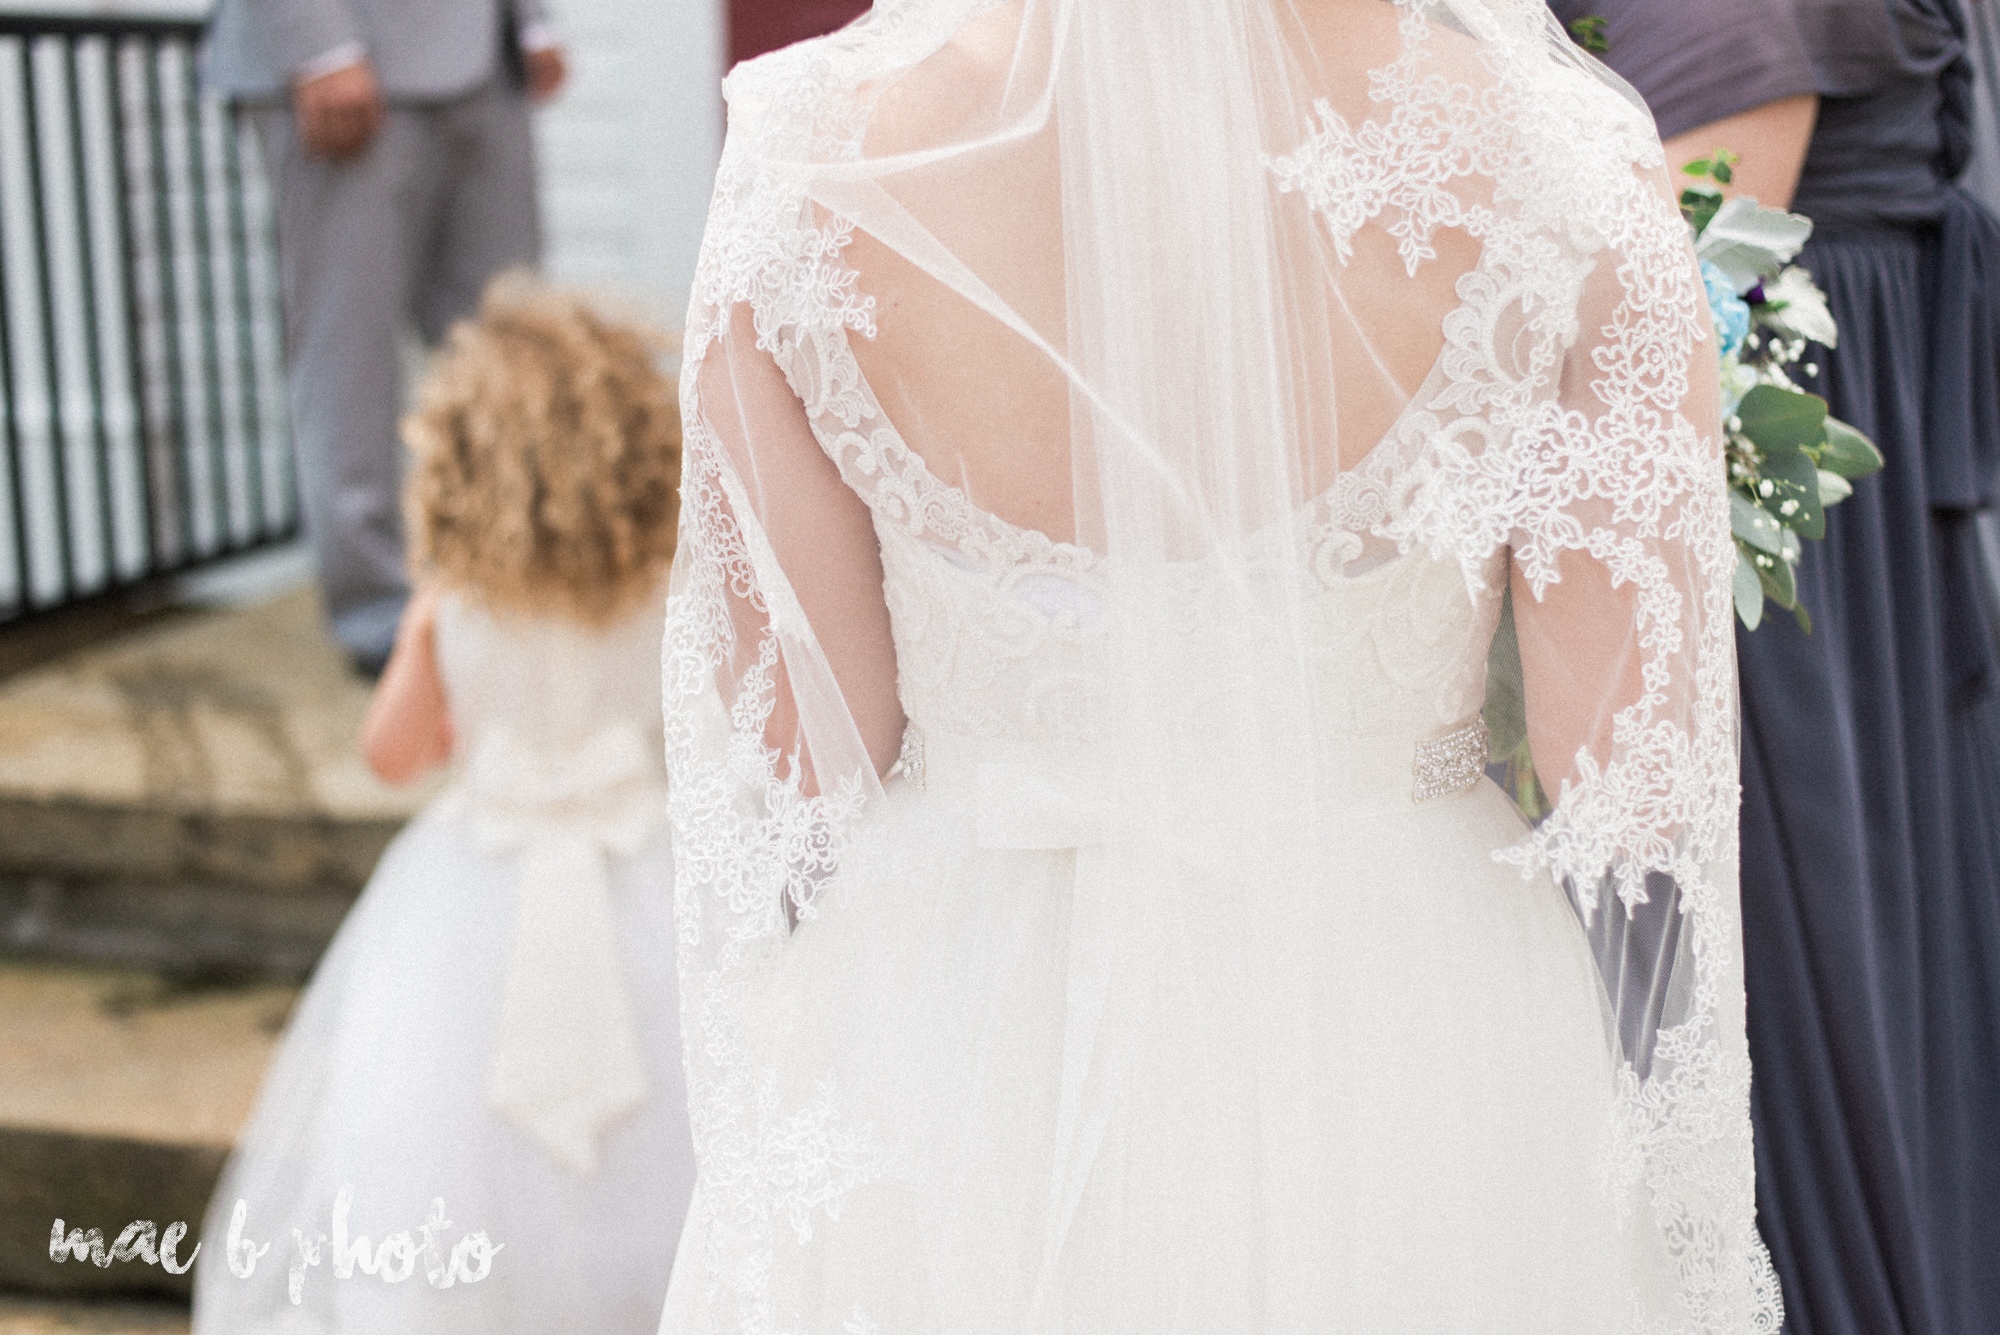 sammi and rob's intimate spring wedding at the chapel at boardman park in boardman ohio photographed by cleveland wedding photographer mae b photo-1.jpg